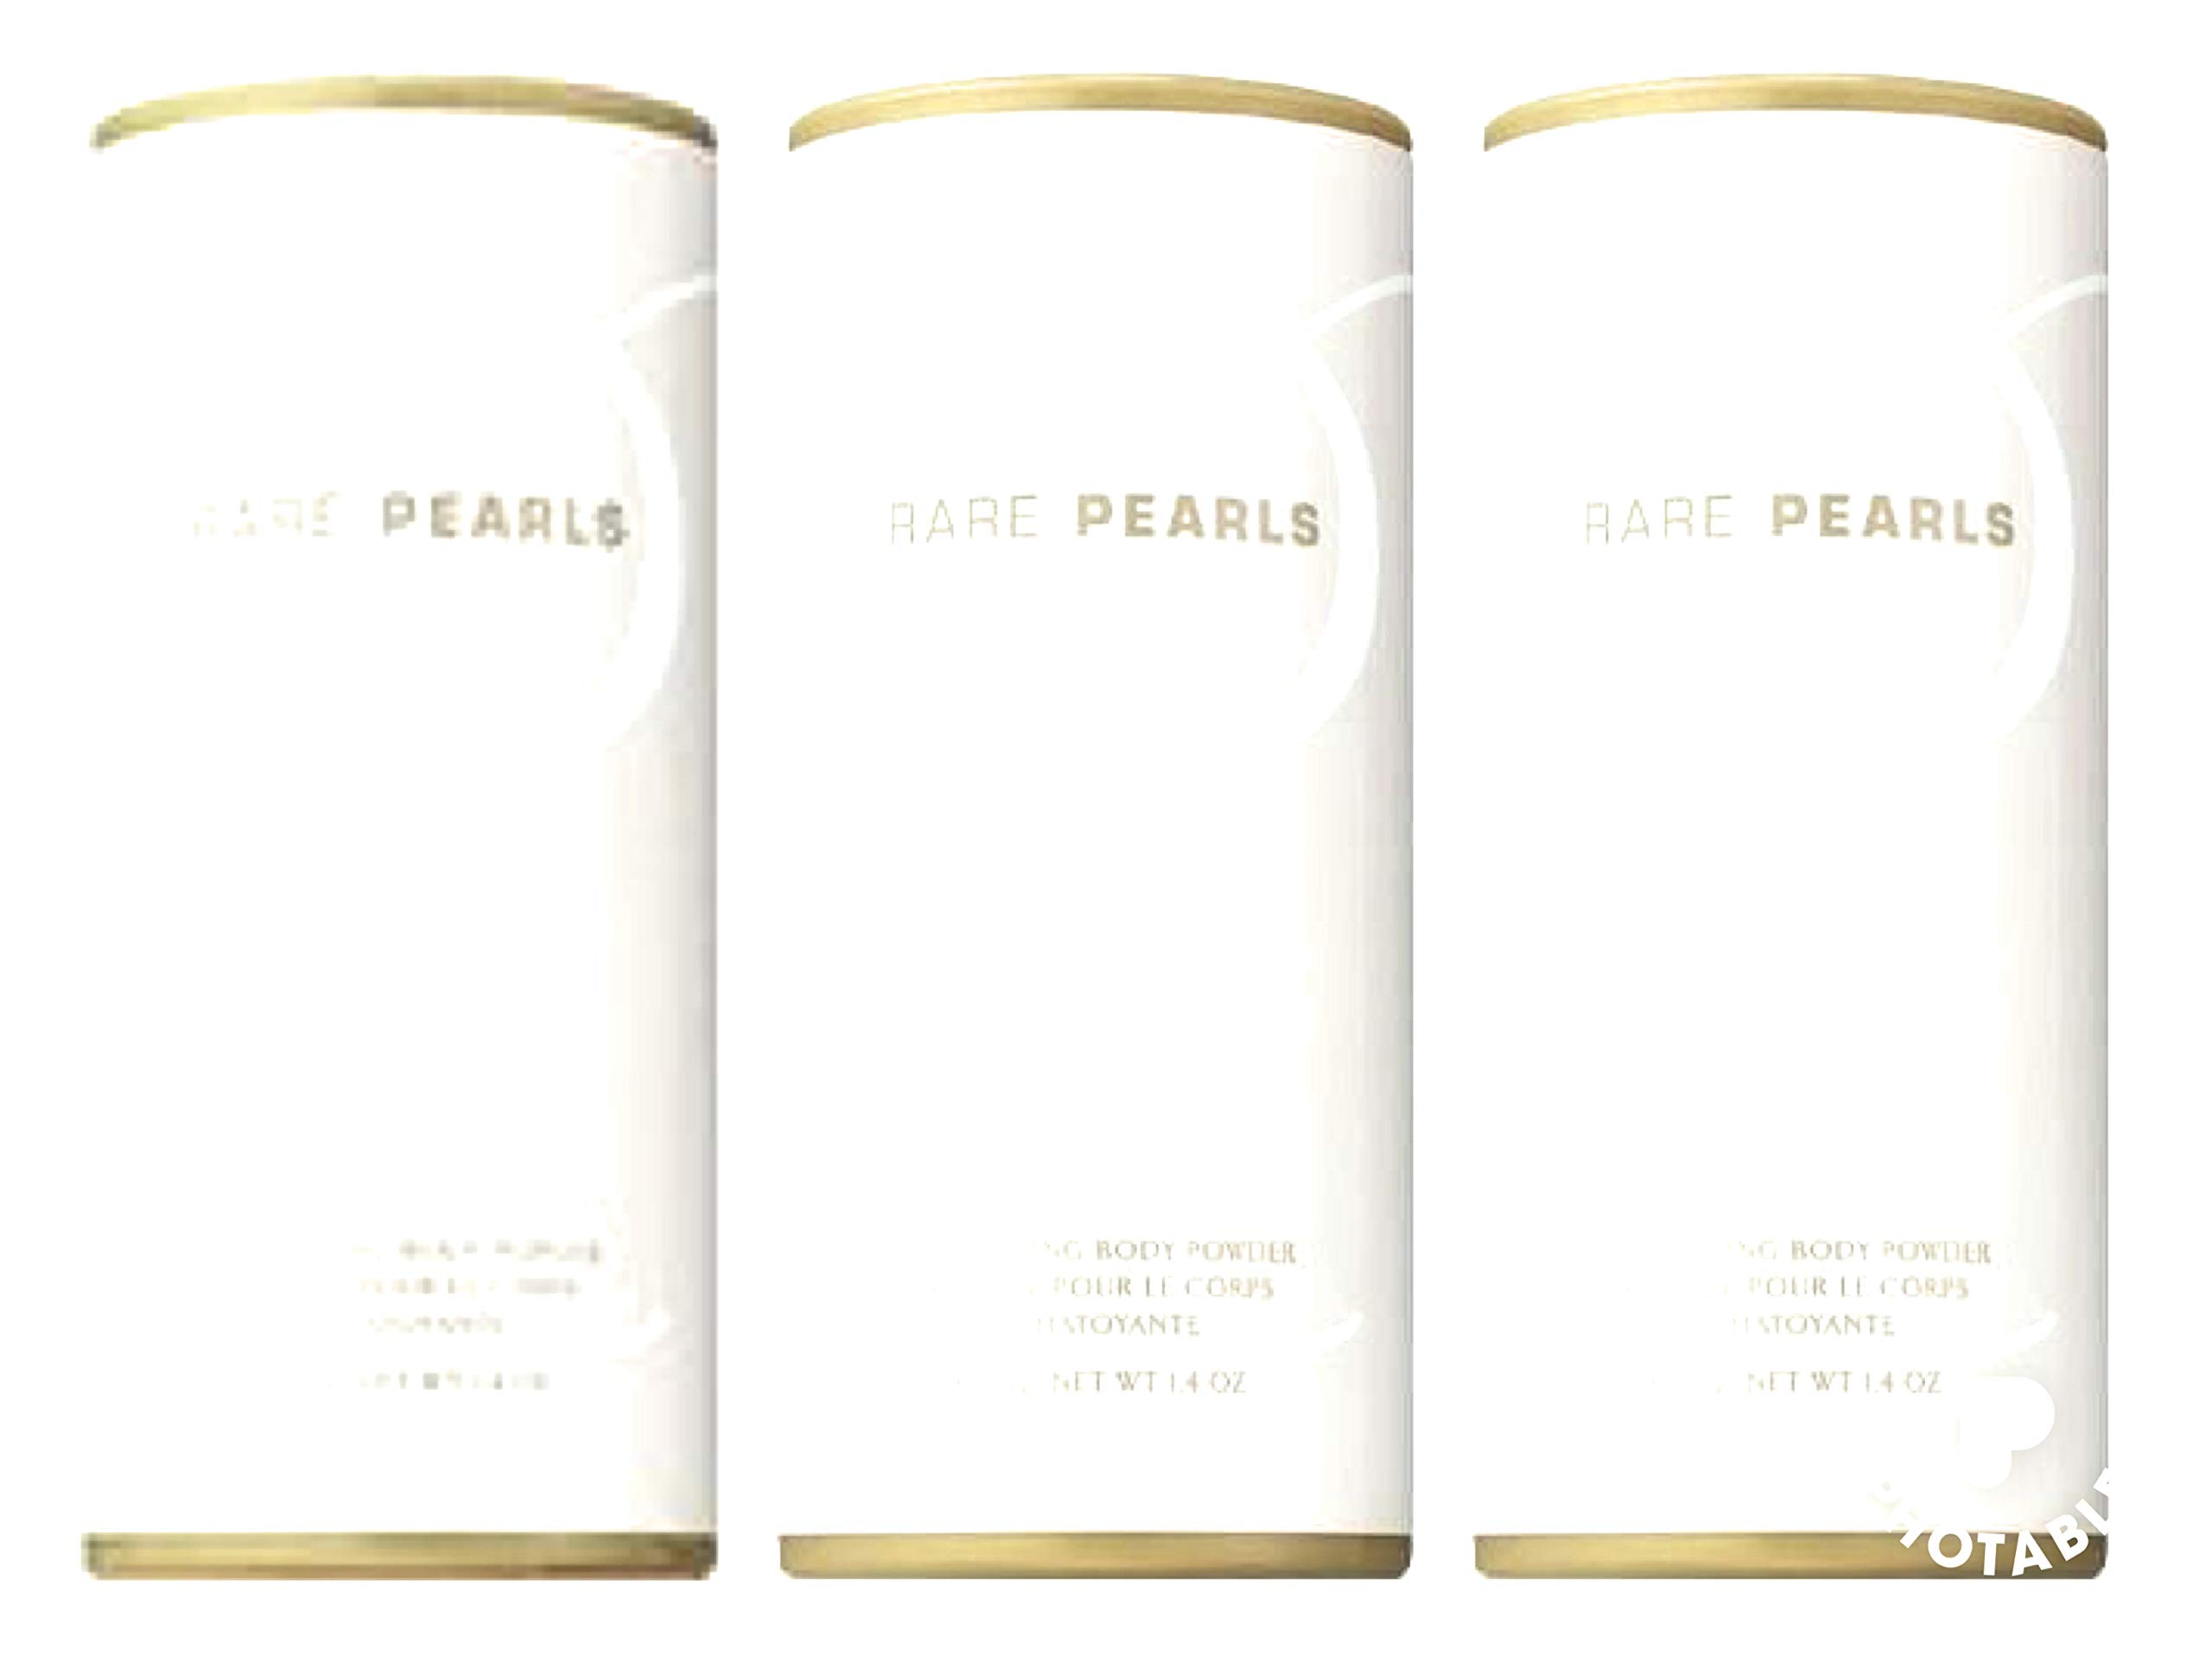 Avon Rare Pearls shimmering body powder talc 1.4 oz each old container brand new Fresh sold by TheGlamShop